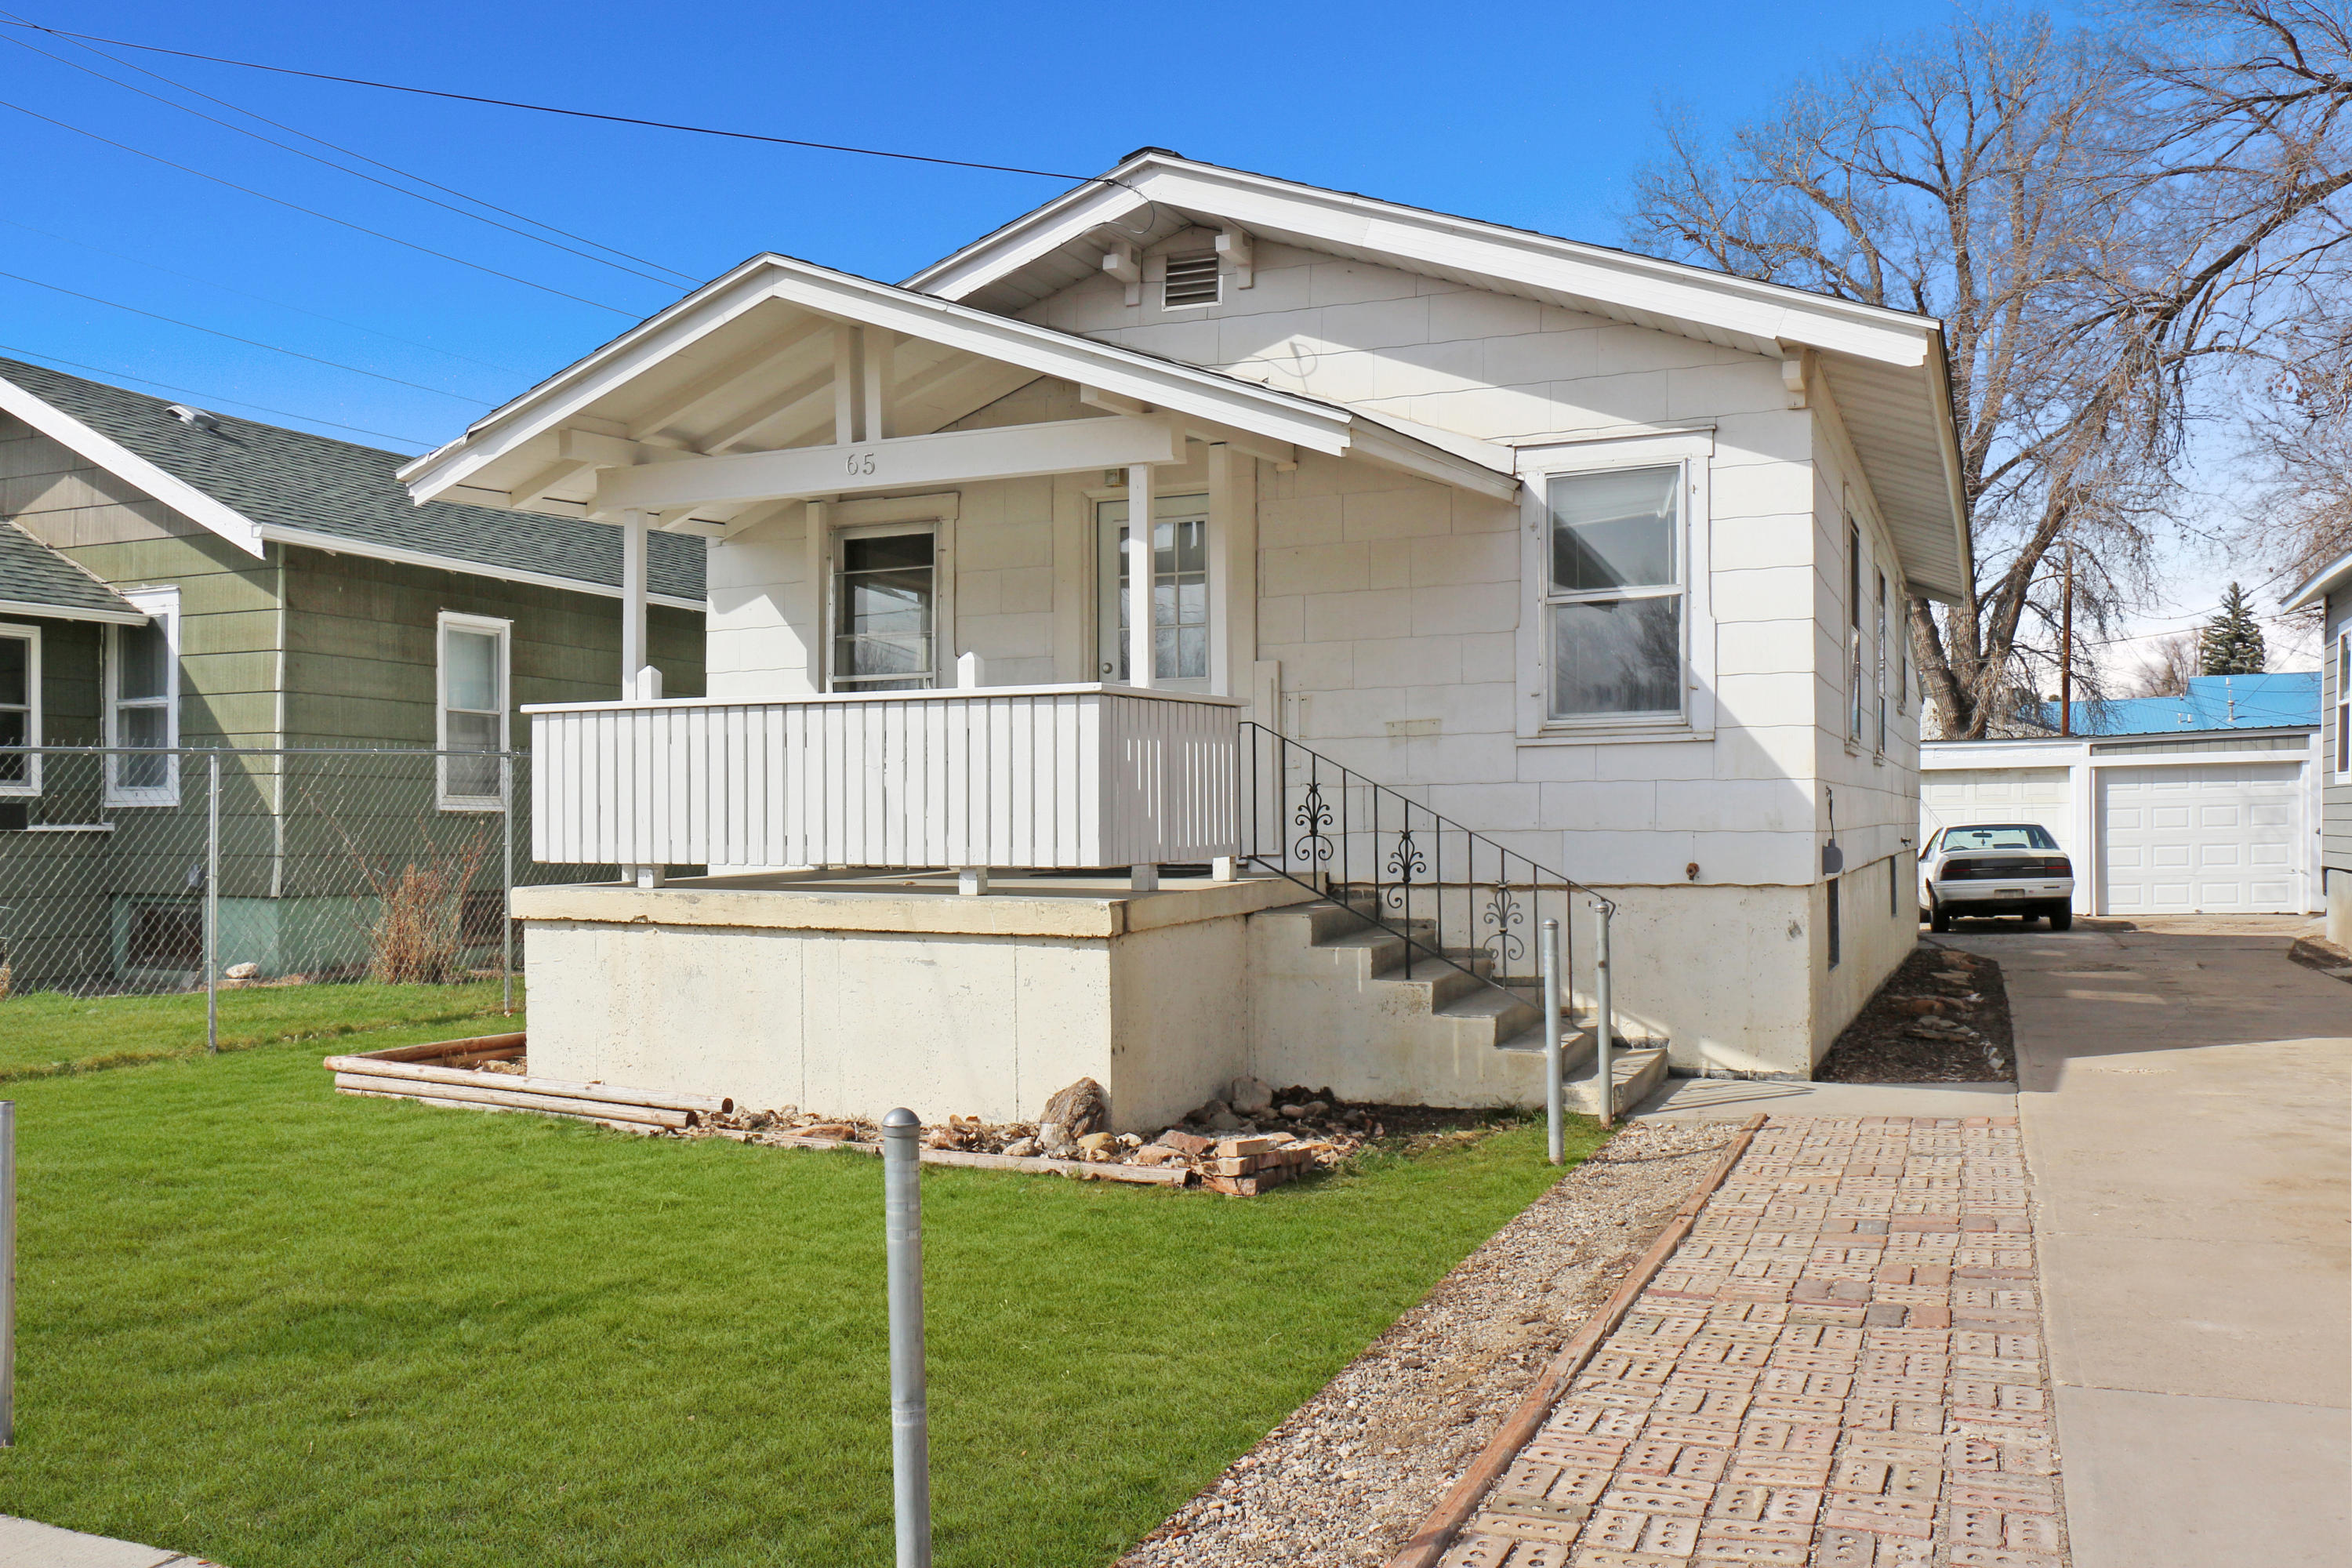 65 E 8th Street, Sheridan, Wyoming 82801, 2 Bedrooms Bedrooms, ,1 BathroomBathrooms,Residential,For Sale,8th,19-295